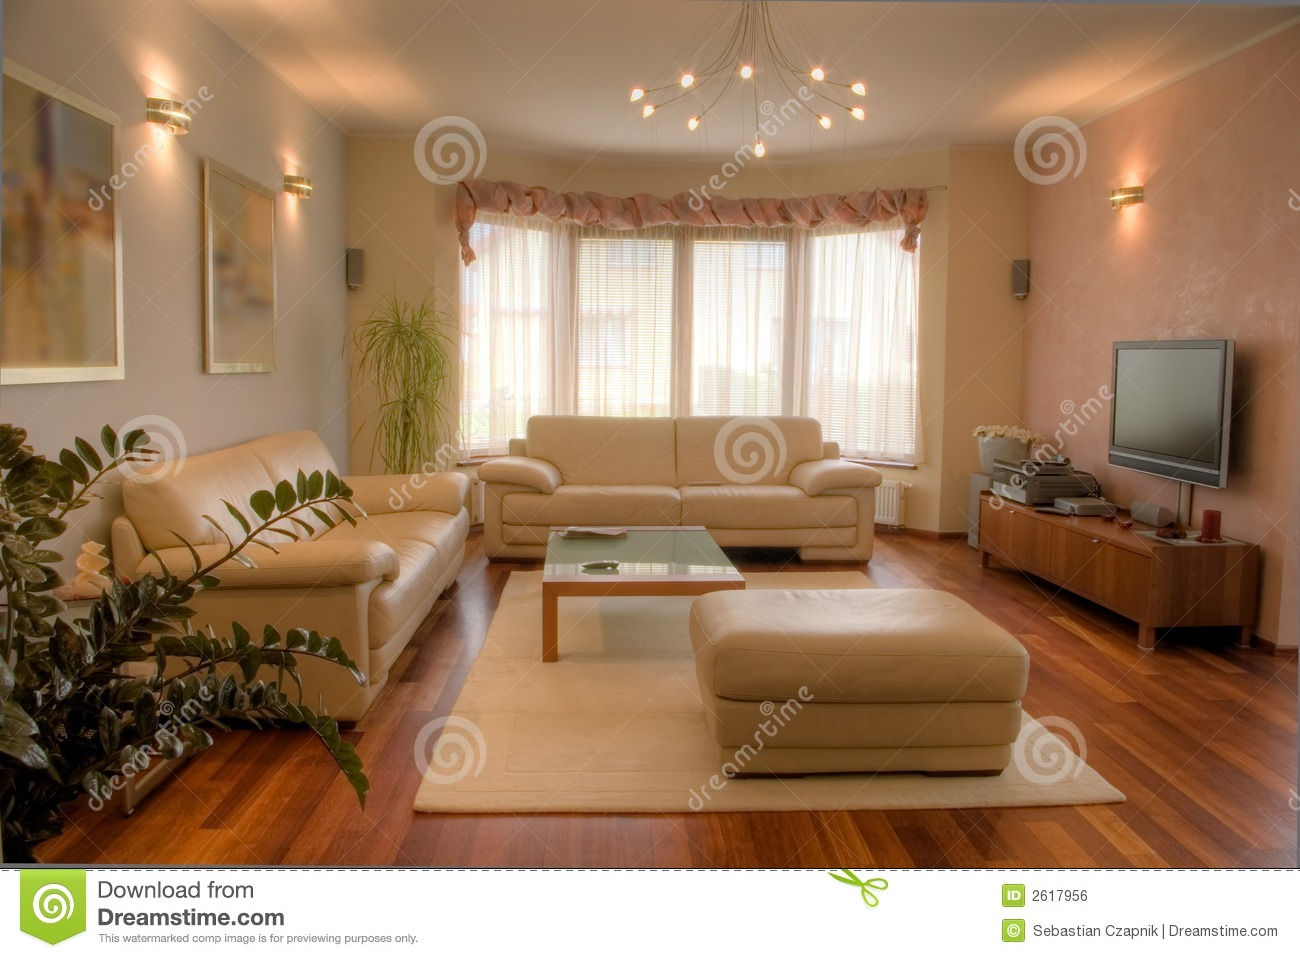 int rieur la maison moderne photo stock image 2617956 for voir des interieur de maison